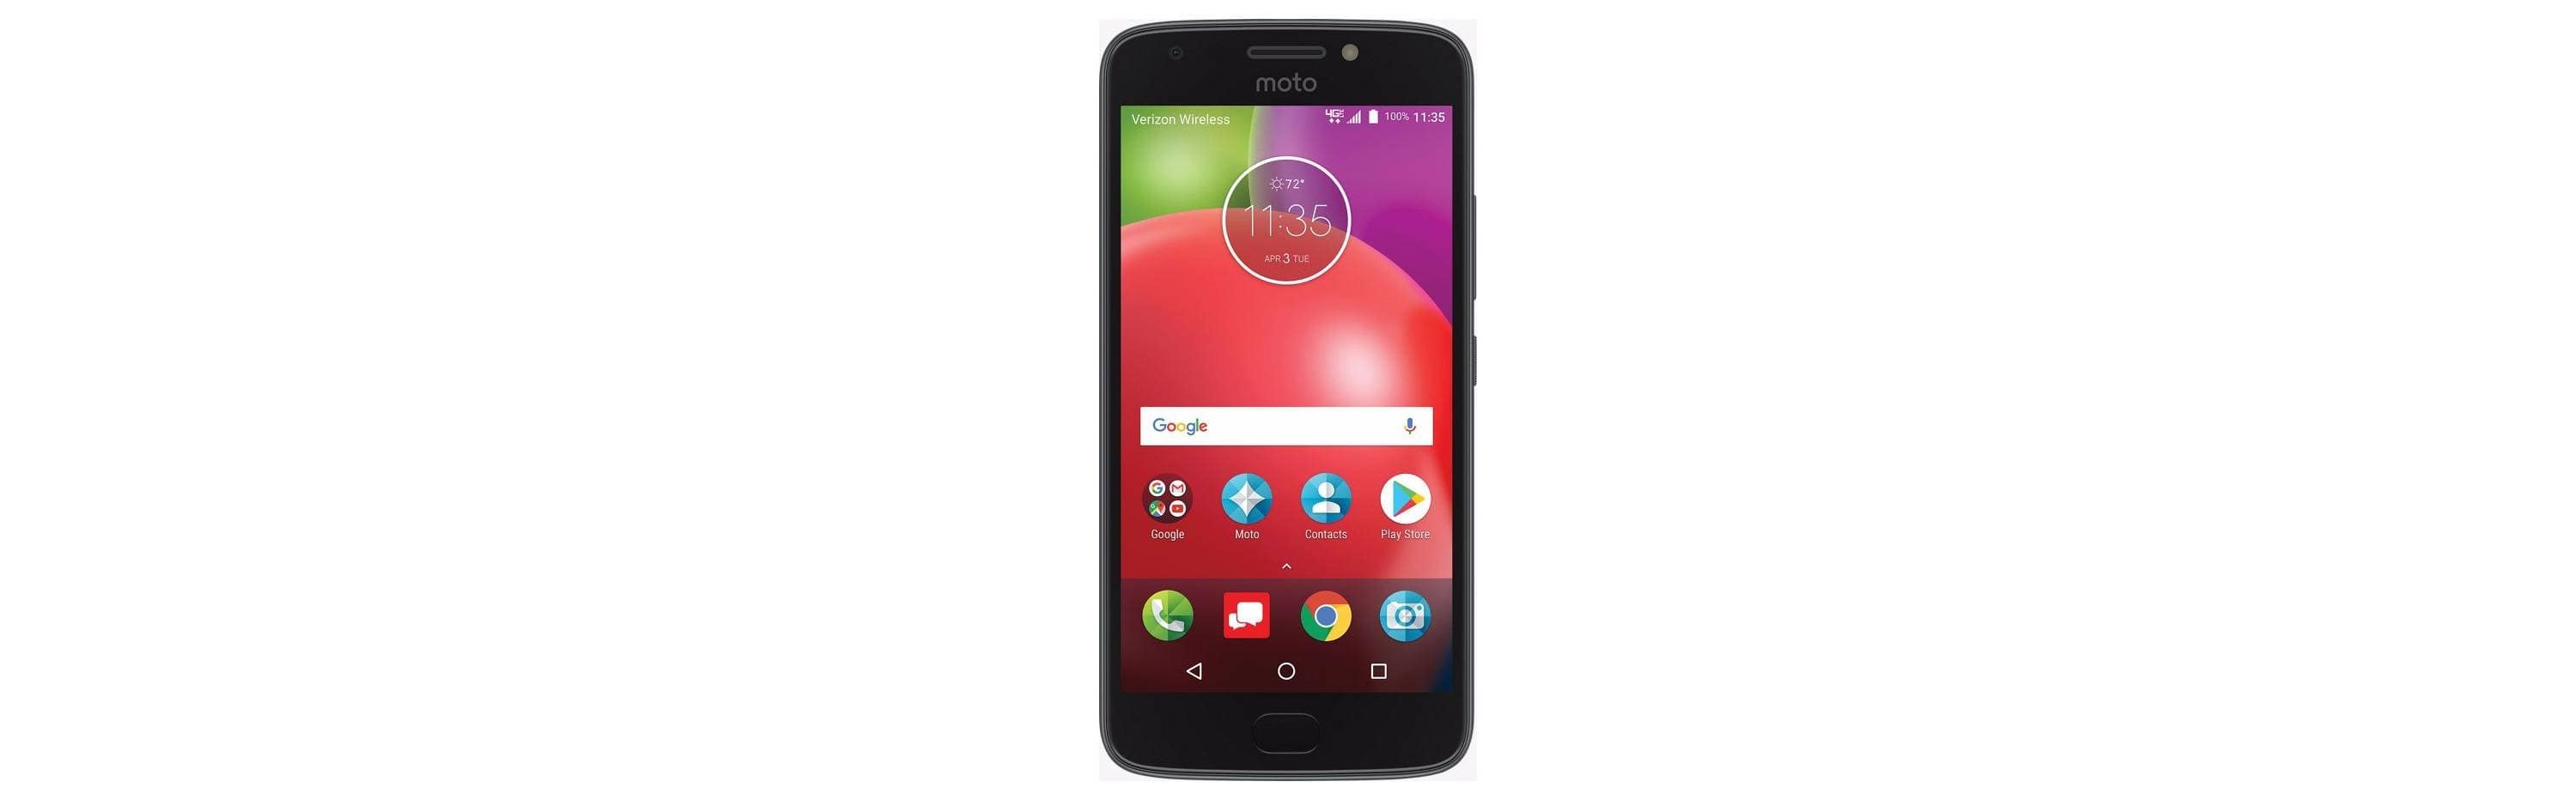 Verizon Moto E4 and E4 Plus at Target for $39.99 / $99.99 (Or E4 $39.88 at Walmart)